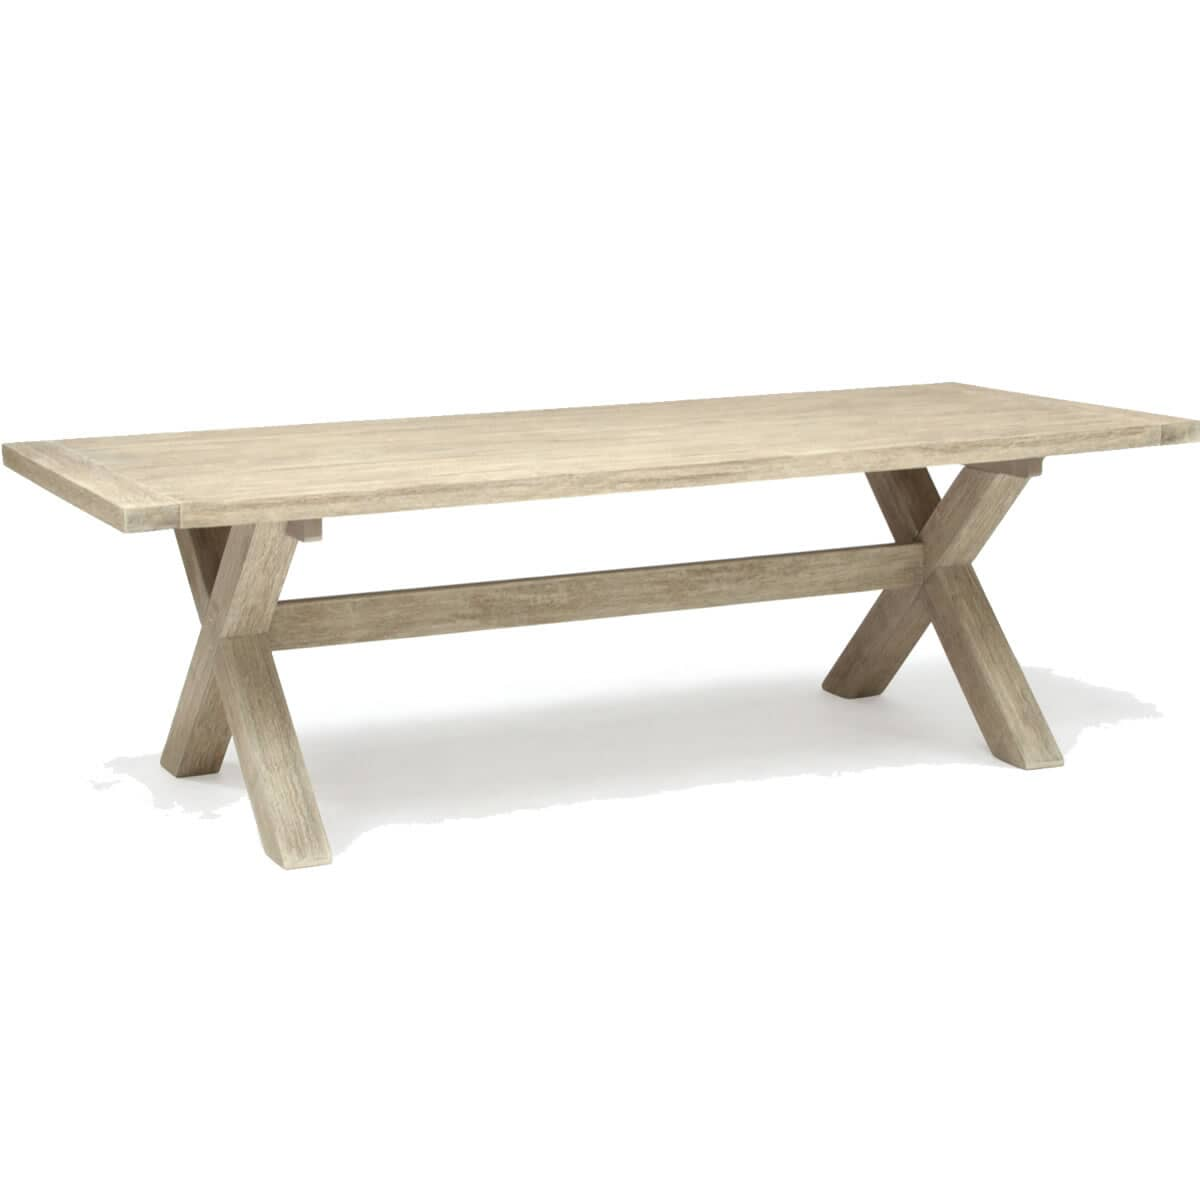 Kettler cora 240 x 110cm dining table huc31409c for Table kettler